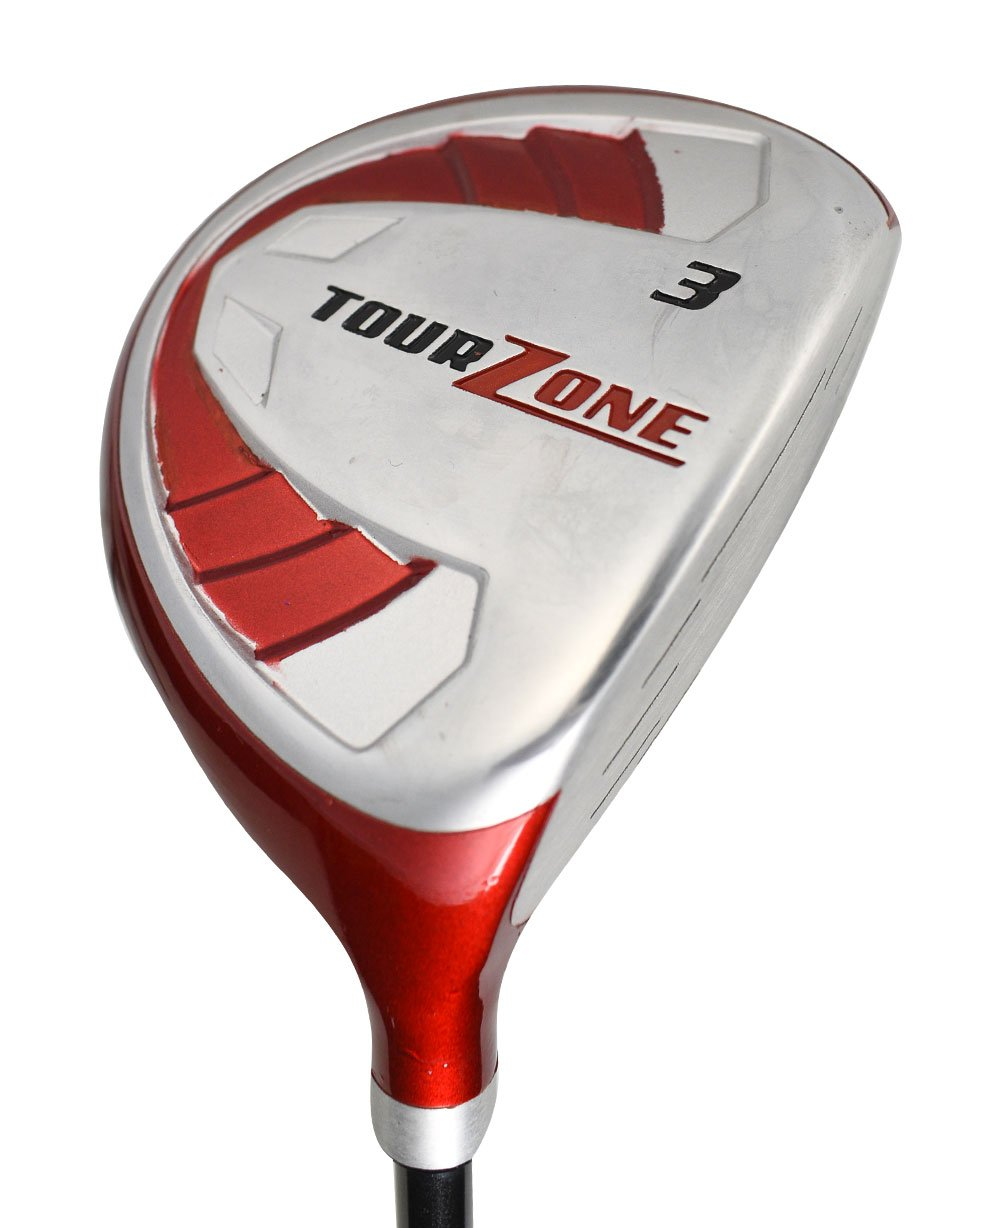 Tour Edge Golf Men's Tour Zone Box Set, Right Hand by Tour Edge Golf (Image #3)